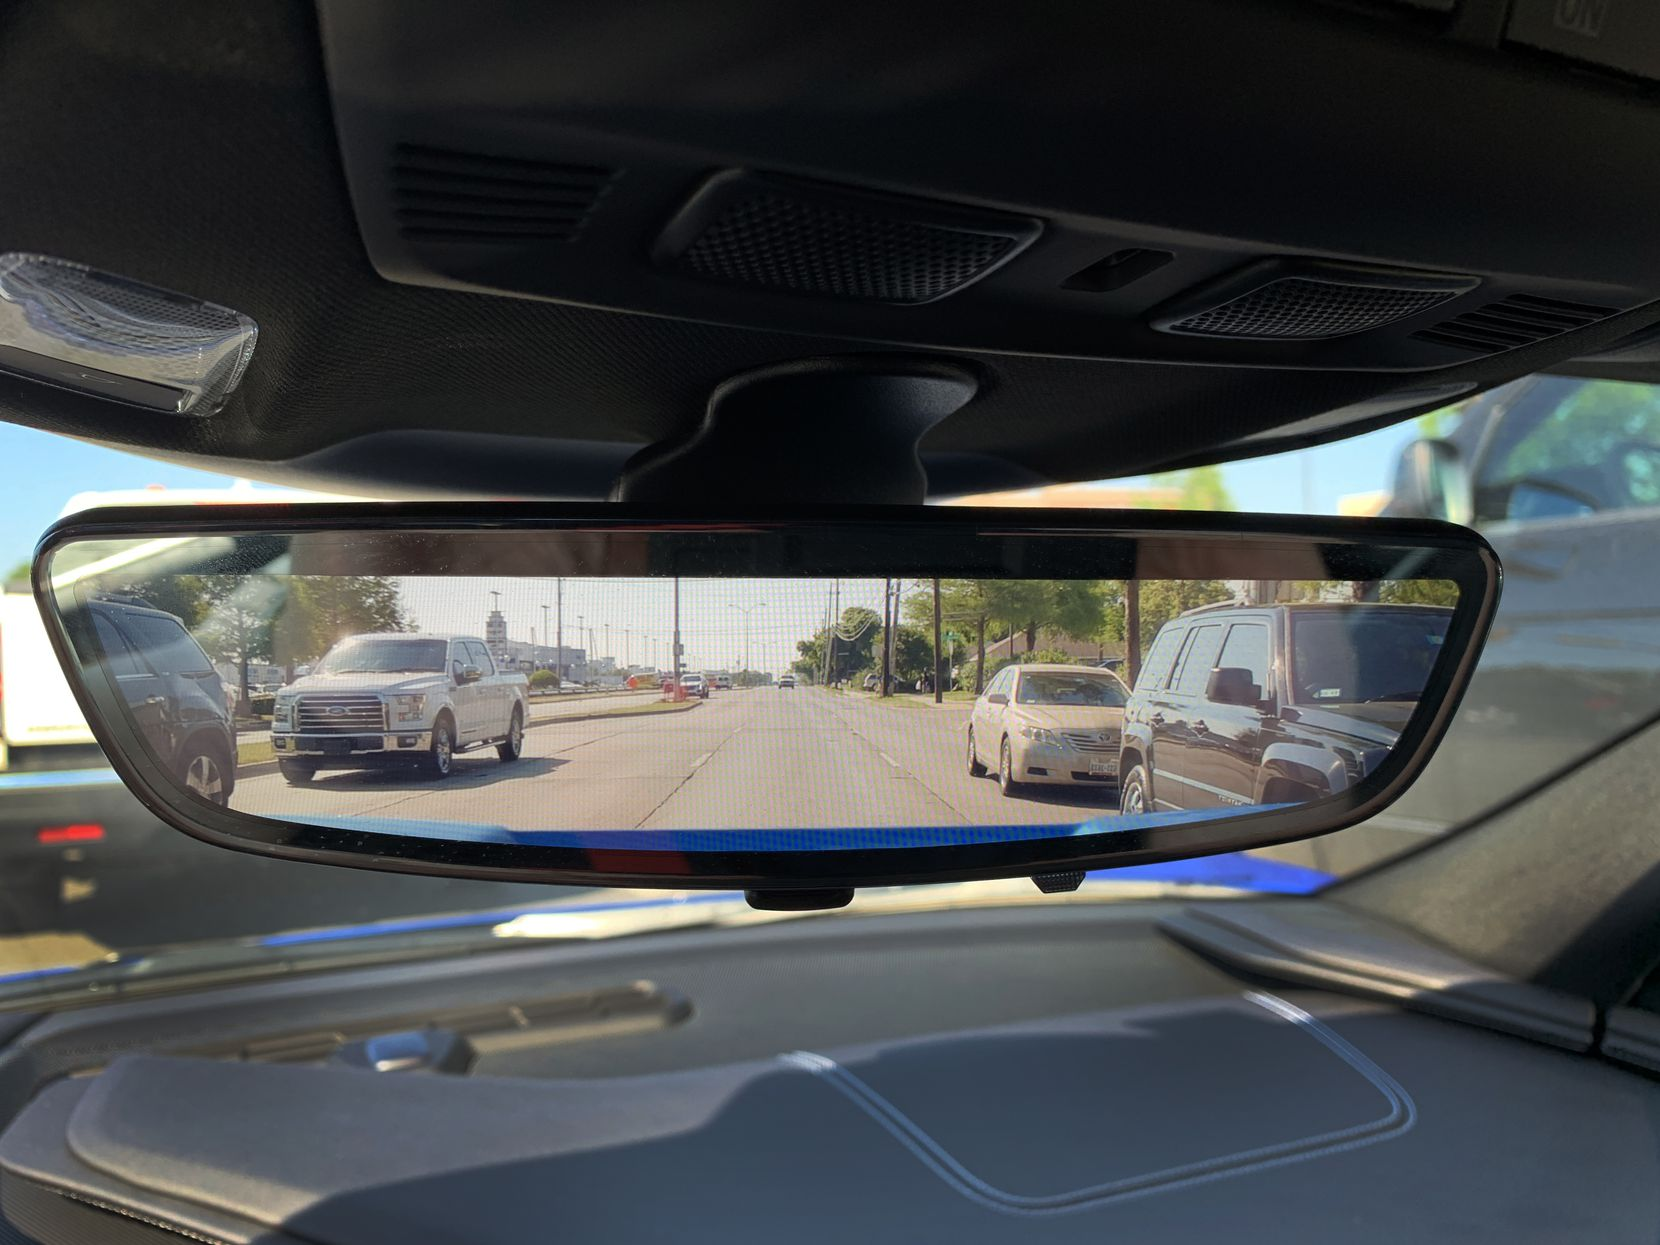 The rear camera mirror of the 2020 Chevrolet Corvette C8 Stingray gives an unobstructed view out the back.